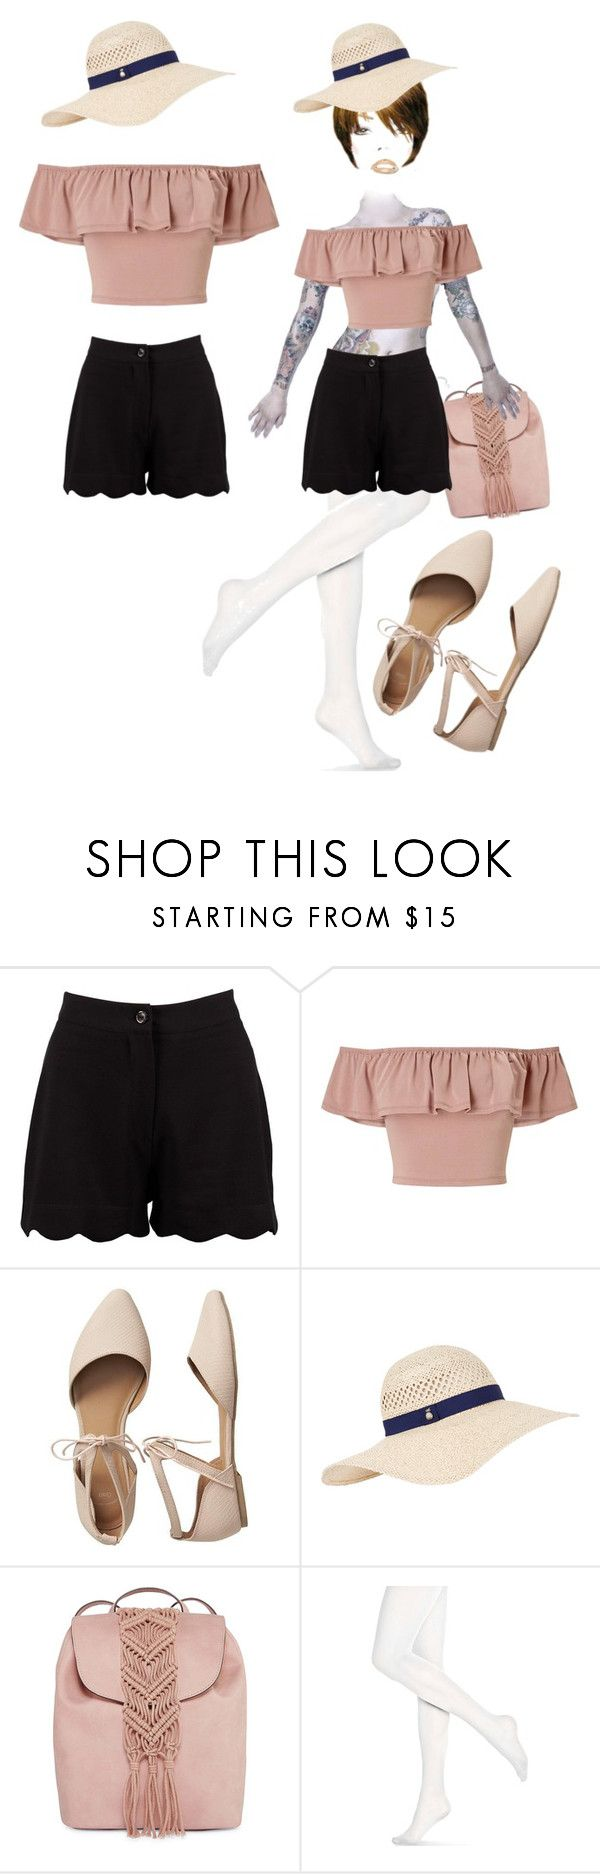 """""""Bez naslova #123"""" by nihadniks ❤ liked on Polyvore featuring Boohoo, Miss Selfridge, Gap, Accessorize, T-shirt & Jeans and Hue"""